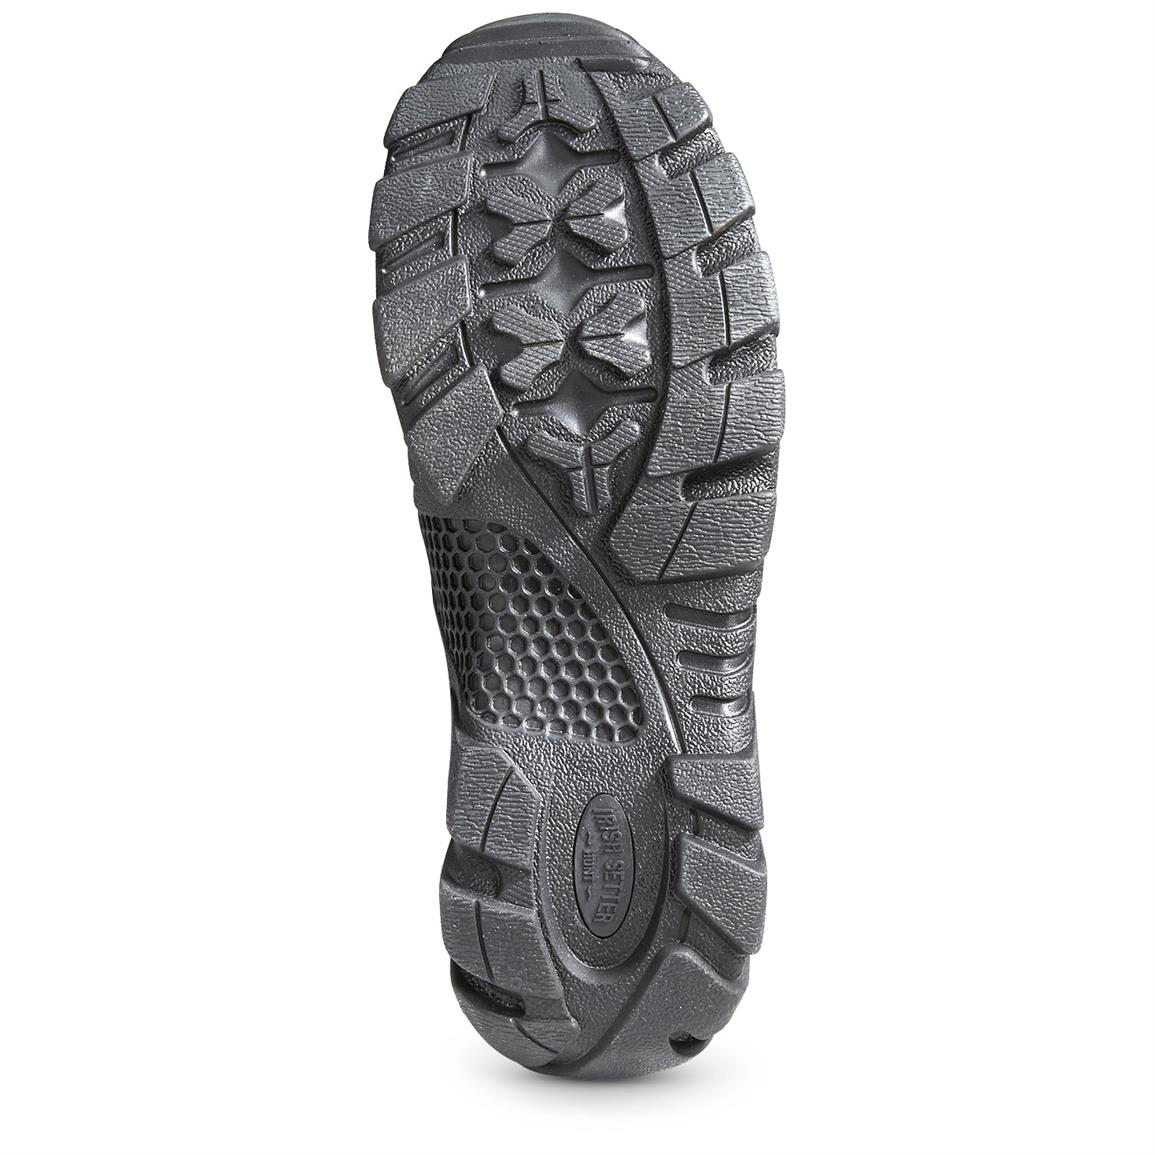 Flexible, all-terrain grip